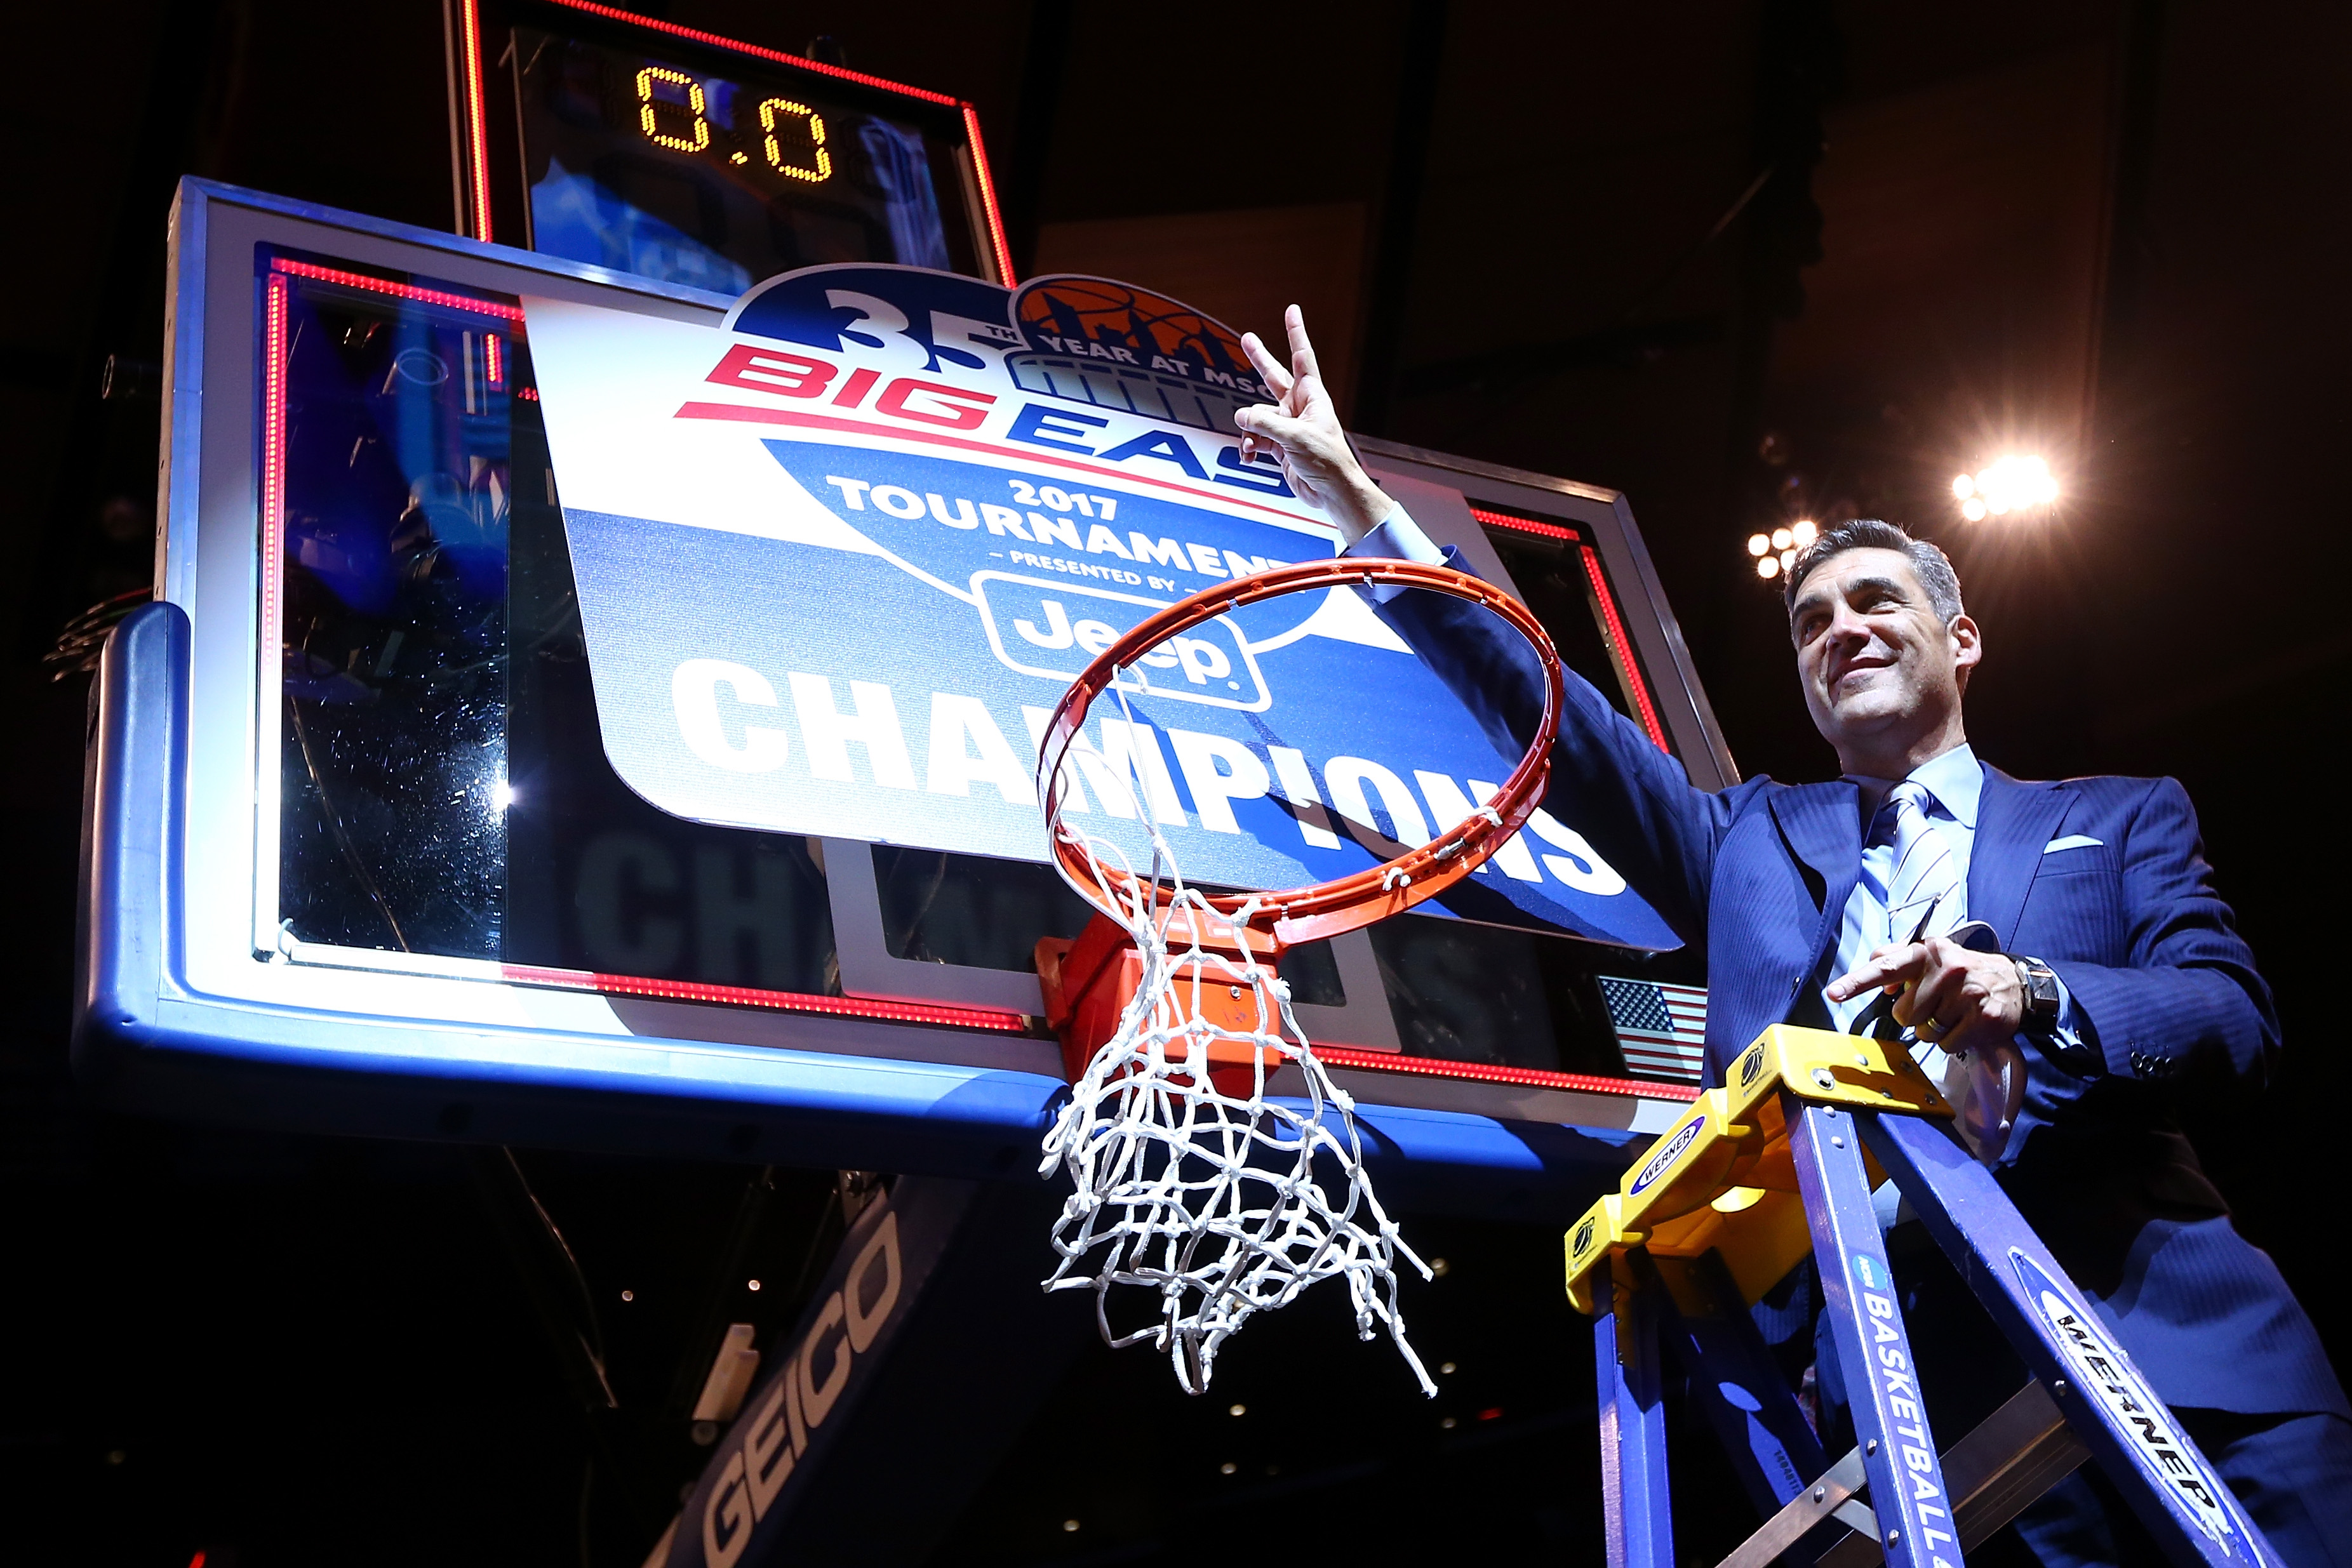 Villanova coach Jay Wright after his team's Big East Tournament win Saturday. (Mike Stobe/Getty Images)